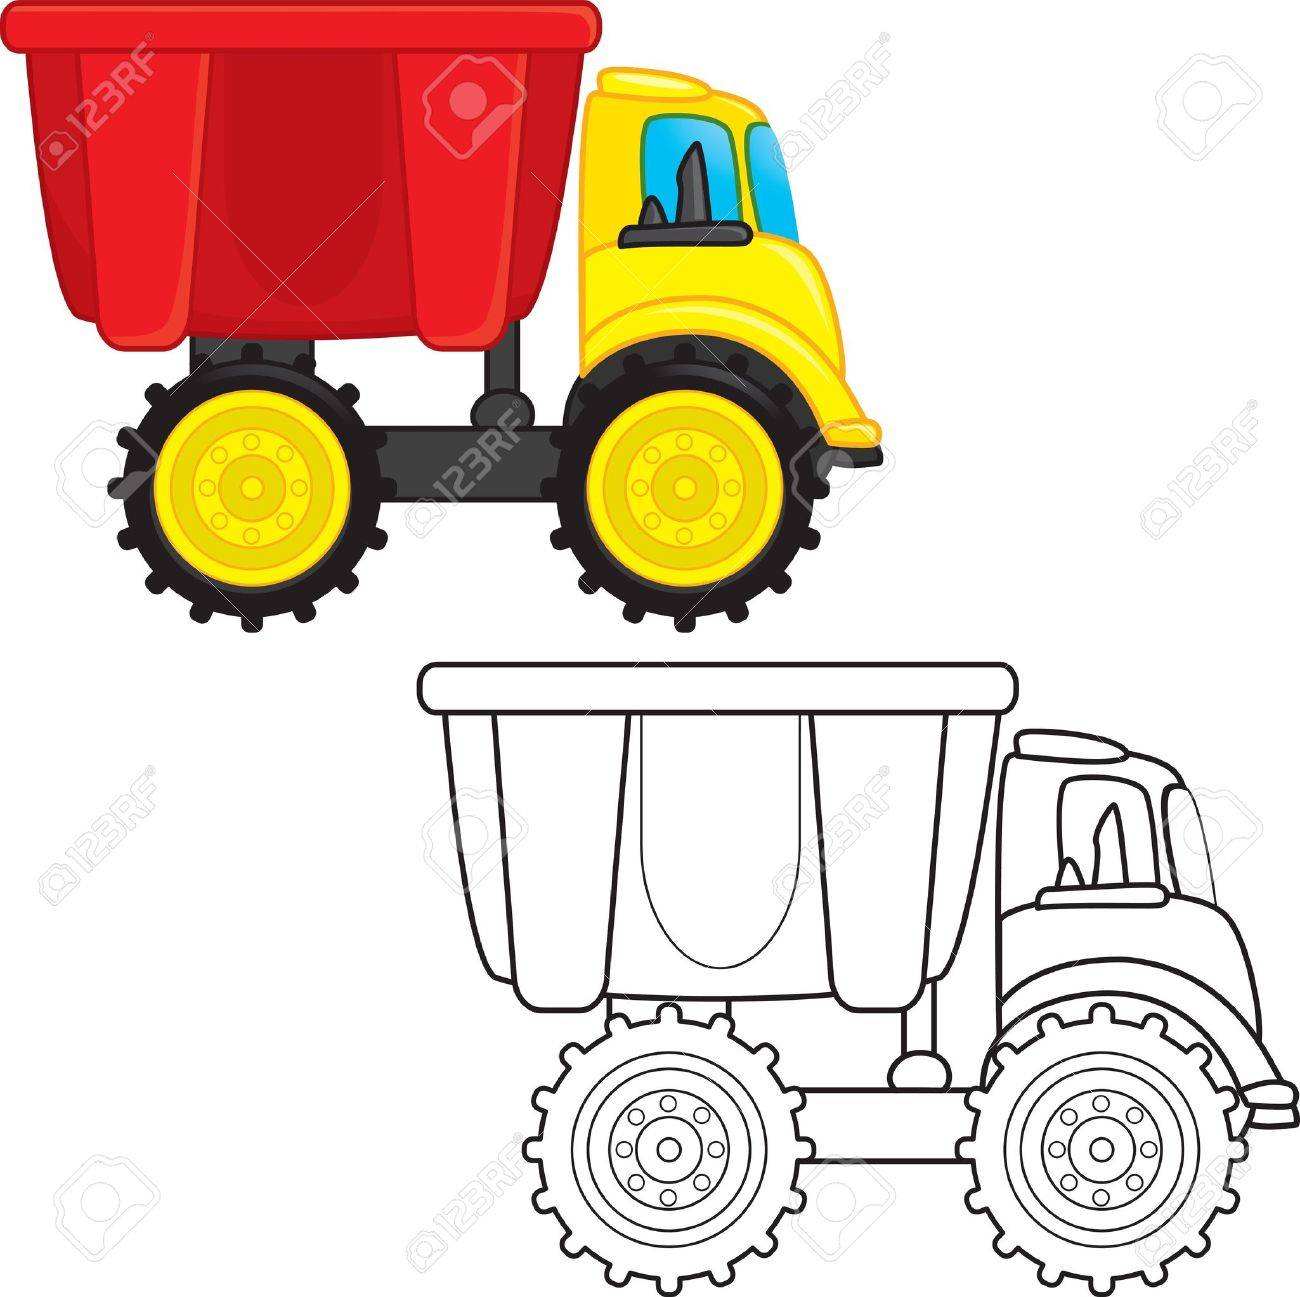 Garbage truck coloring book - Dump Truck Toy Coloring Book Vector Illustration Stock Vector 16023731